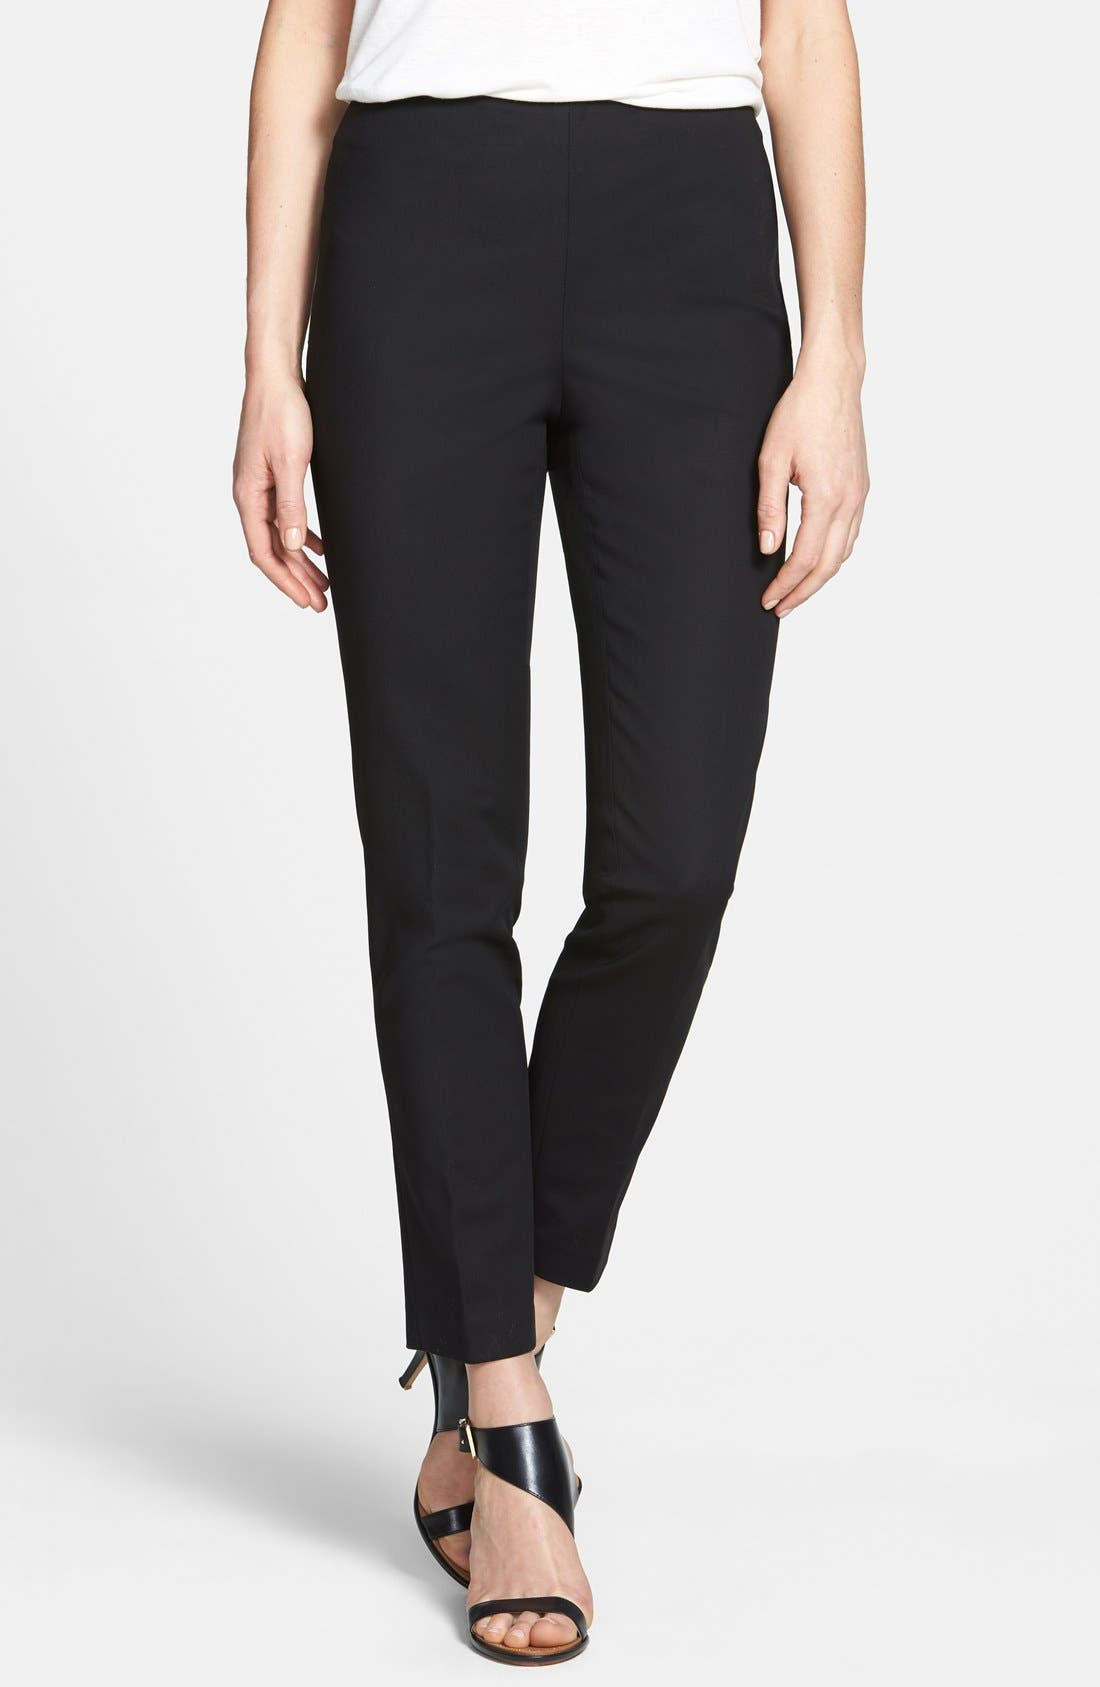 Main Image - Vince Camuto Side Zip Double Weave Stretch Cotton Pants (Regular & Petite)